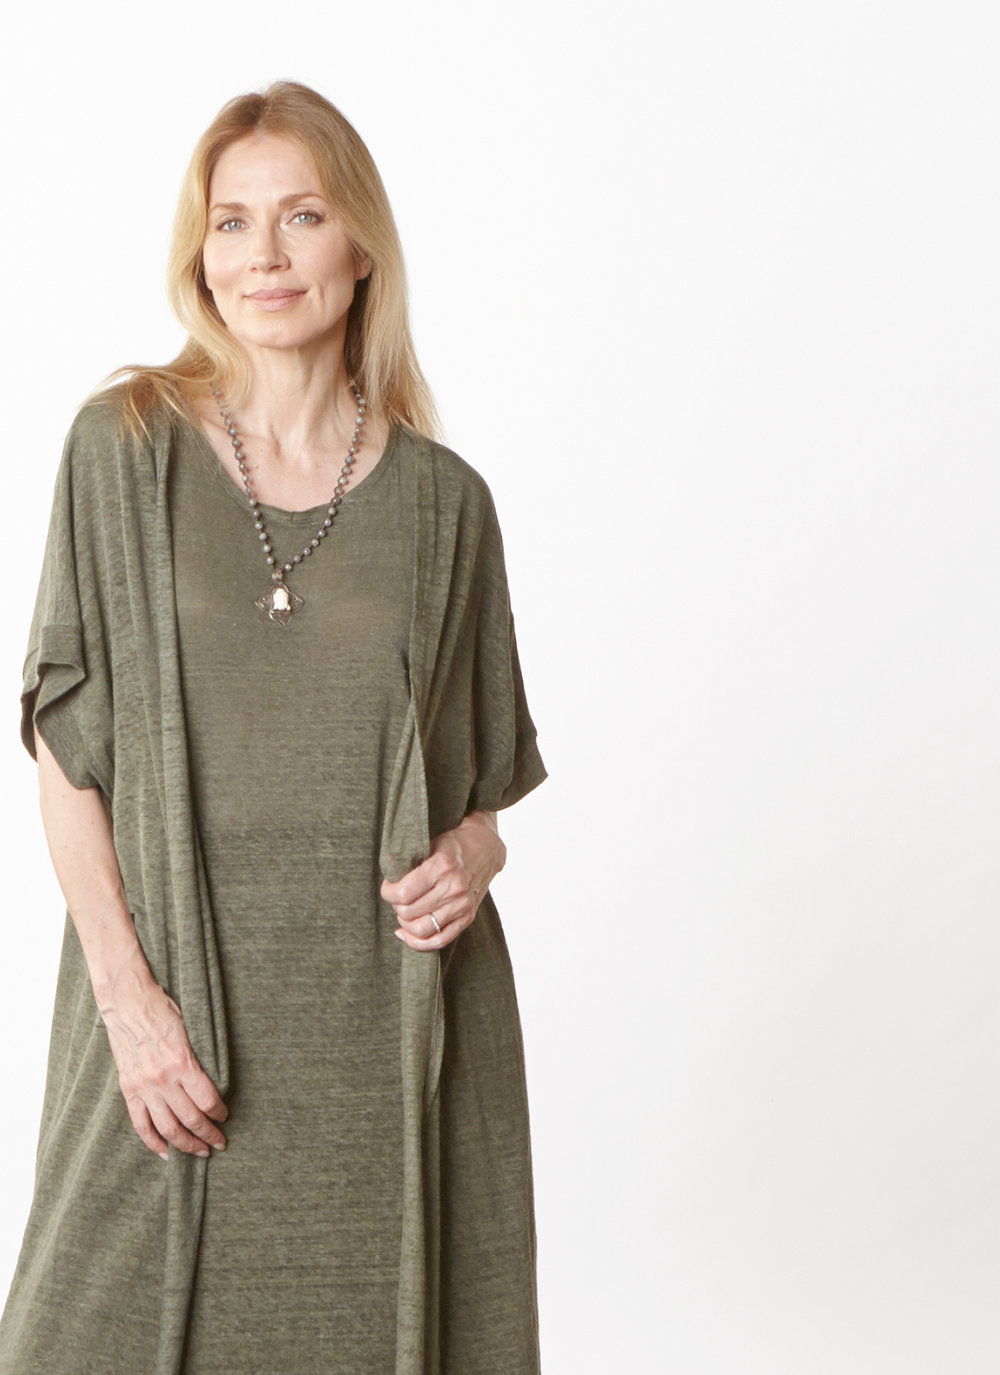 Ezra Cardigan, Pippa Dress in Verde Italian Linen Knit